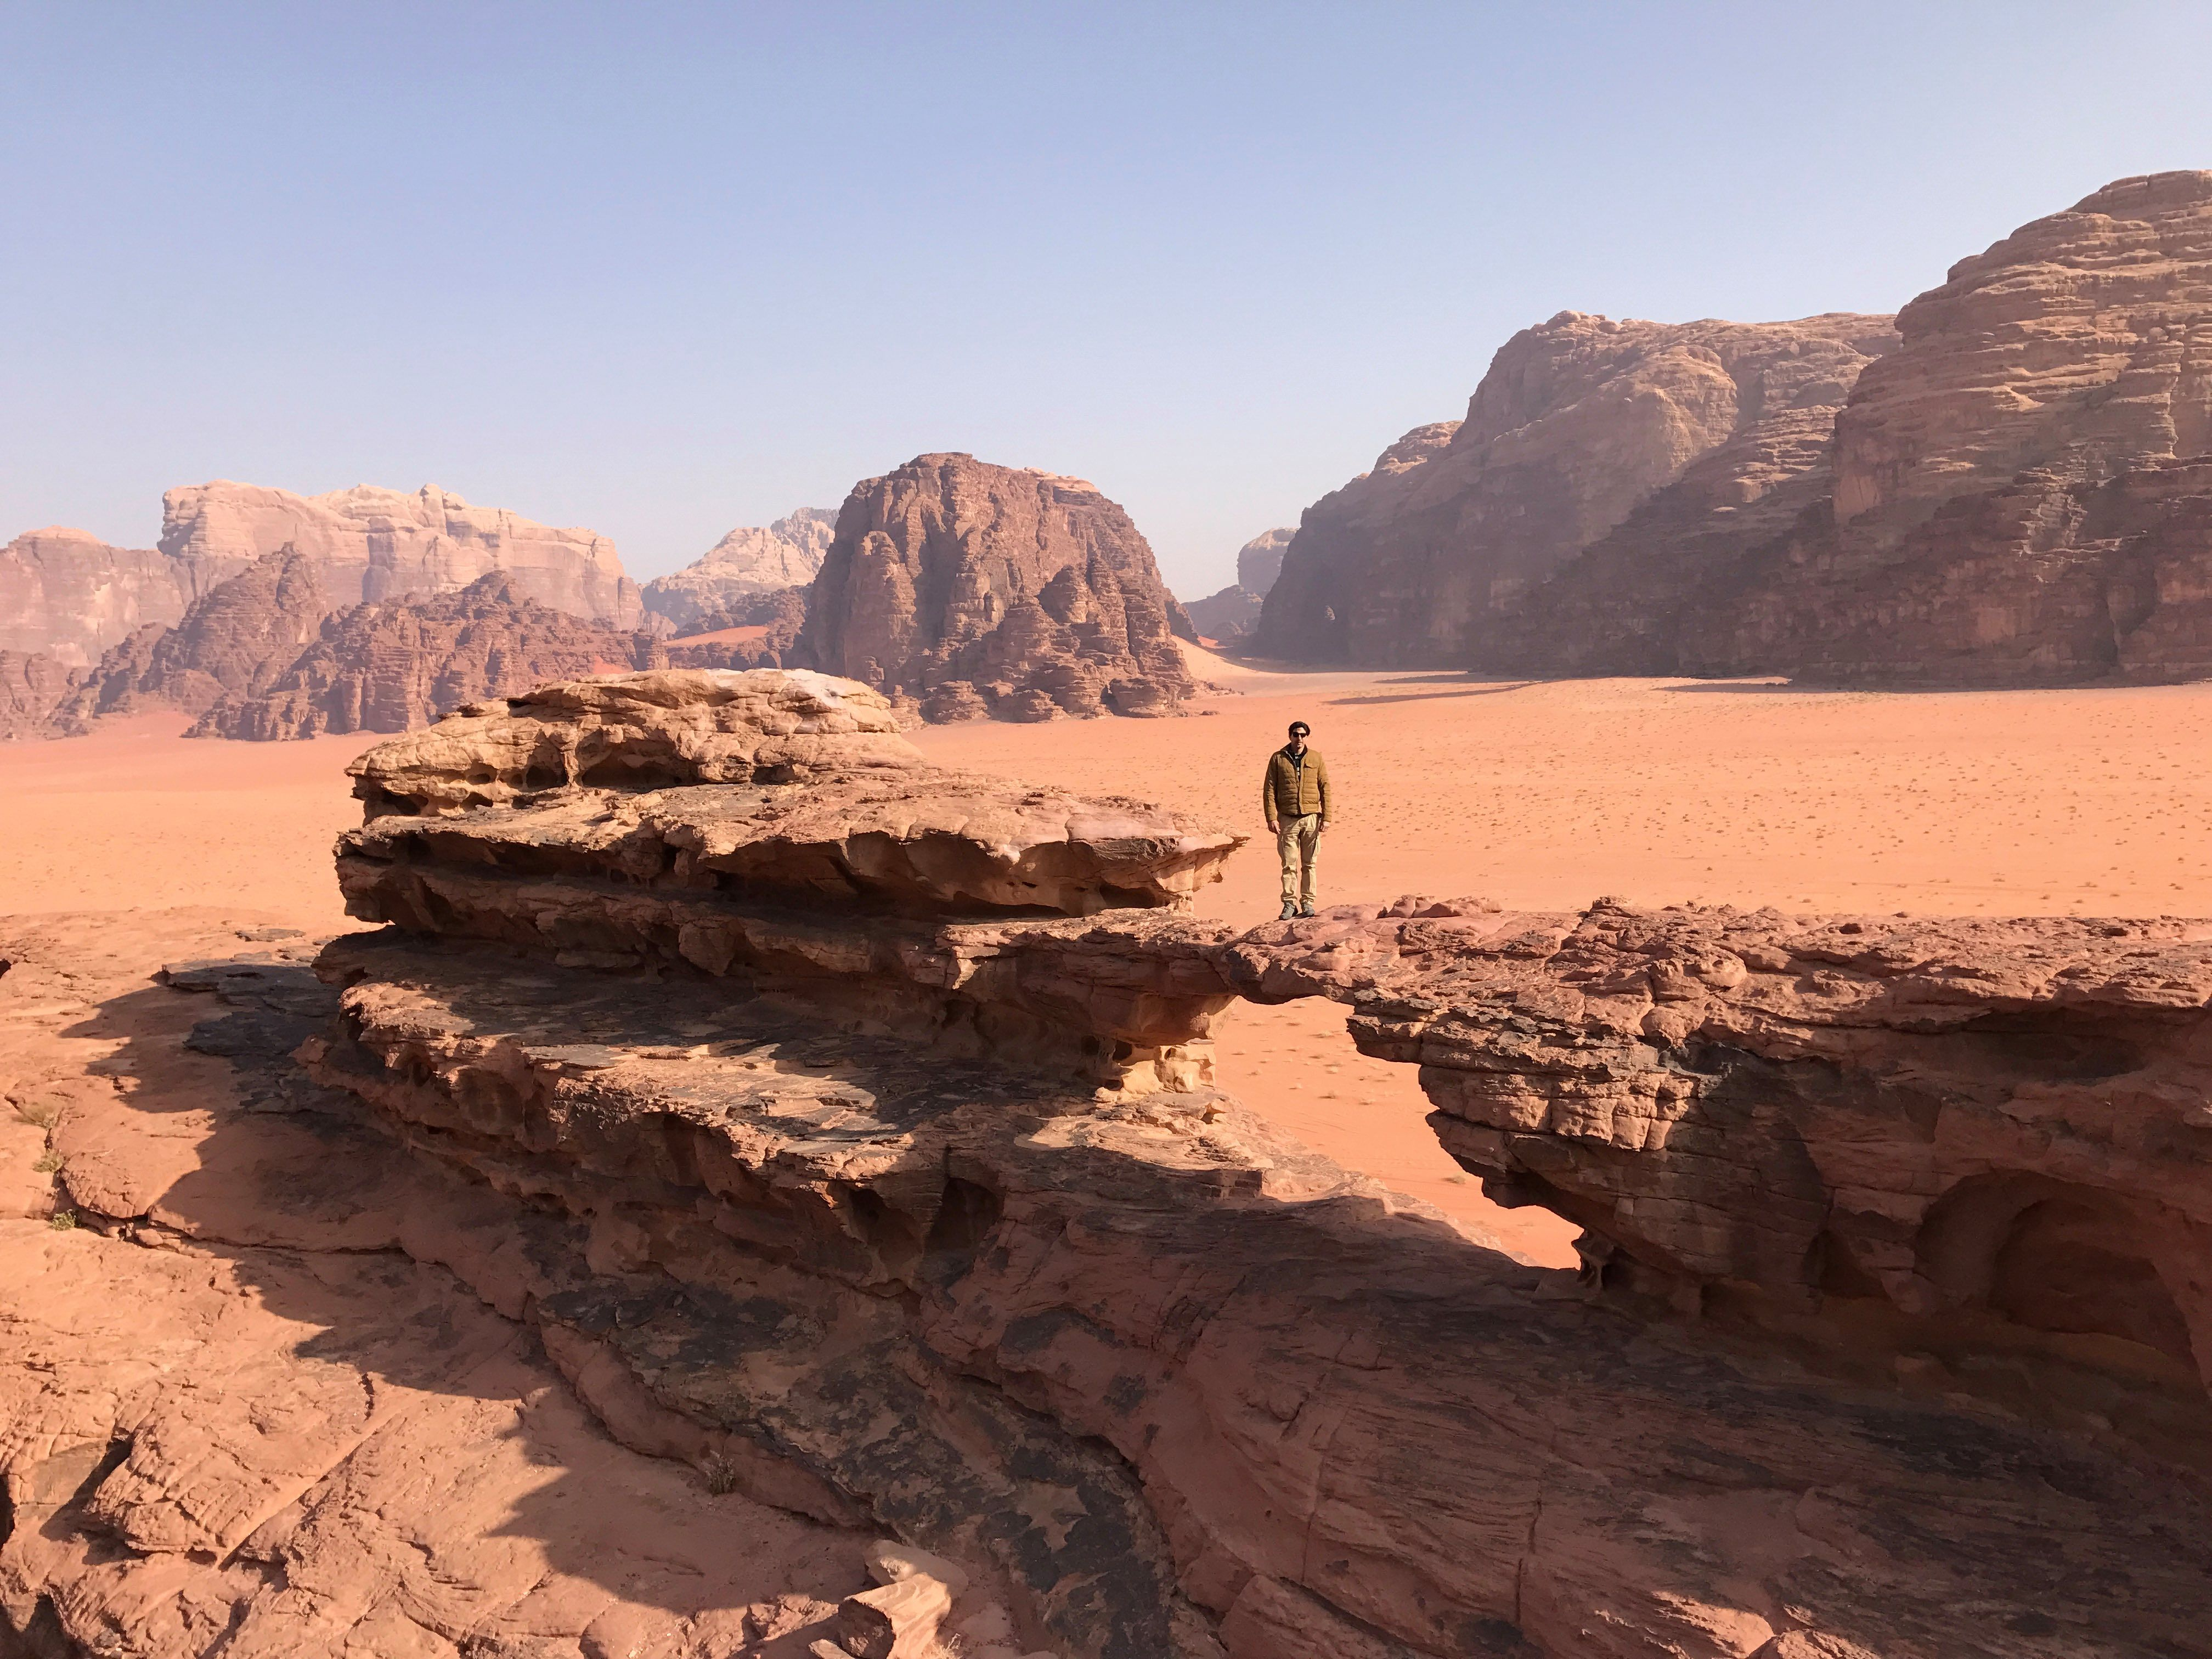 From Petra to Wadi Rum an archaeologist's view of Jordan